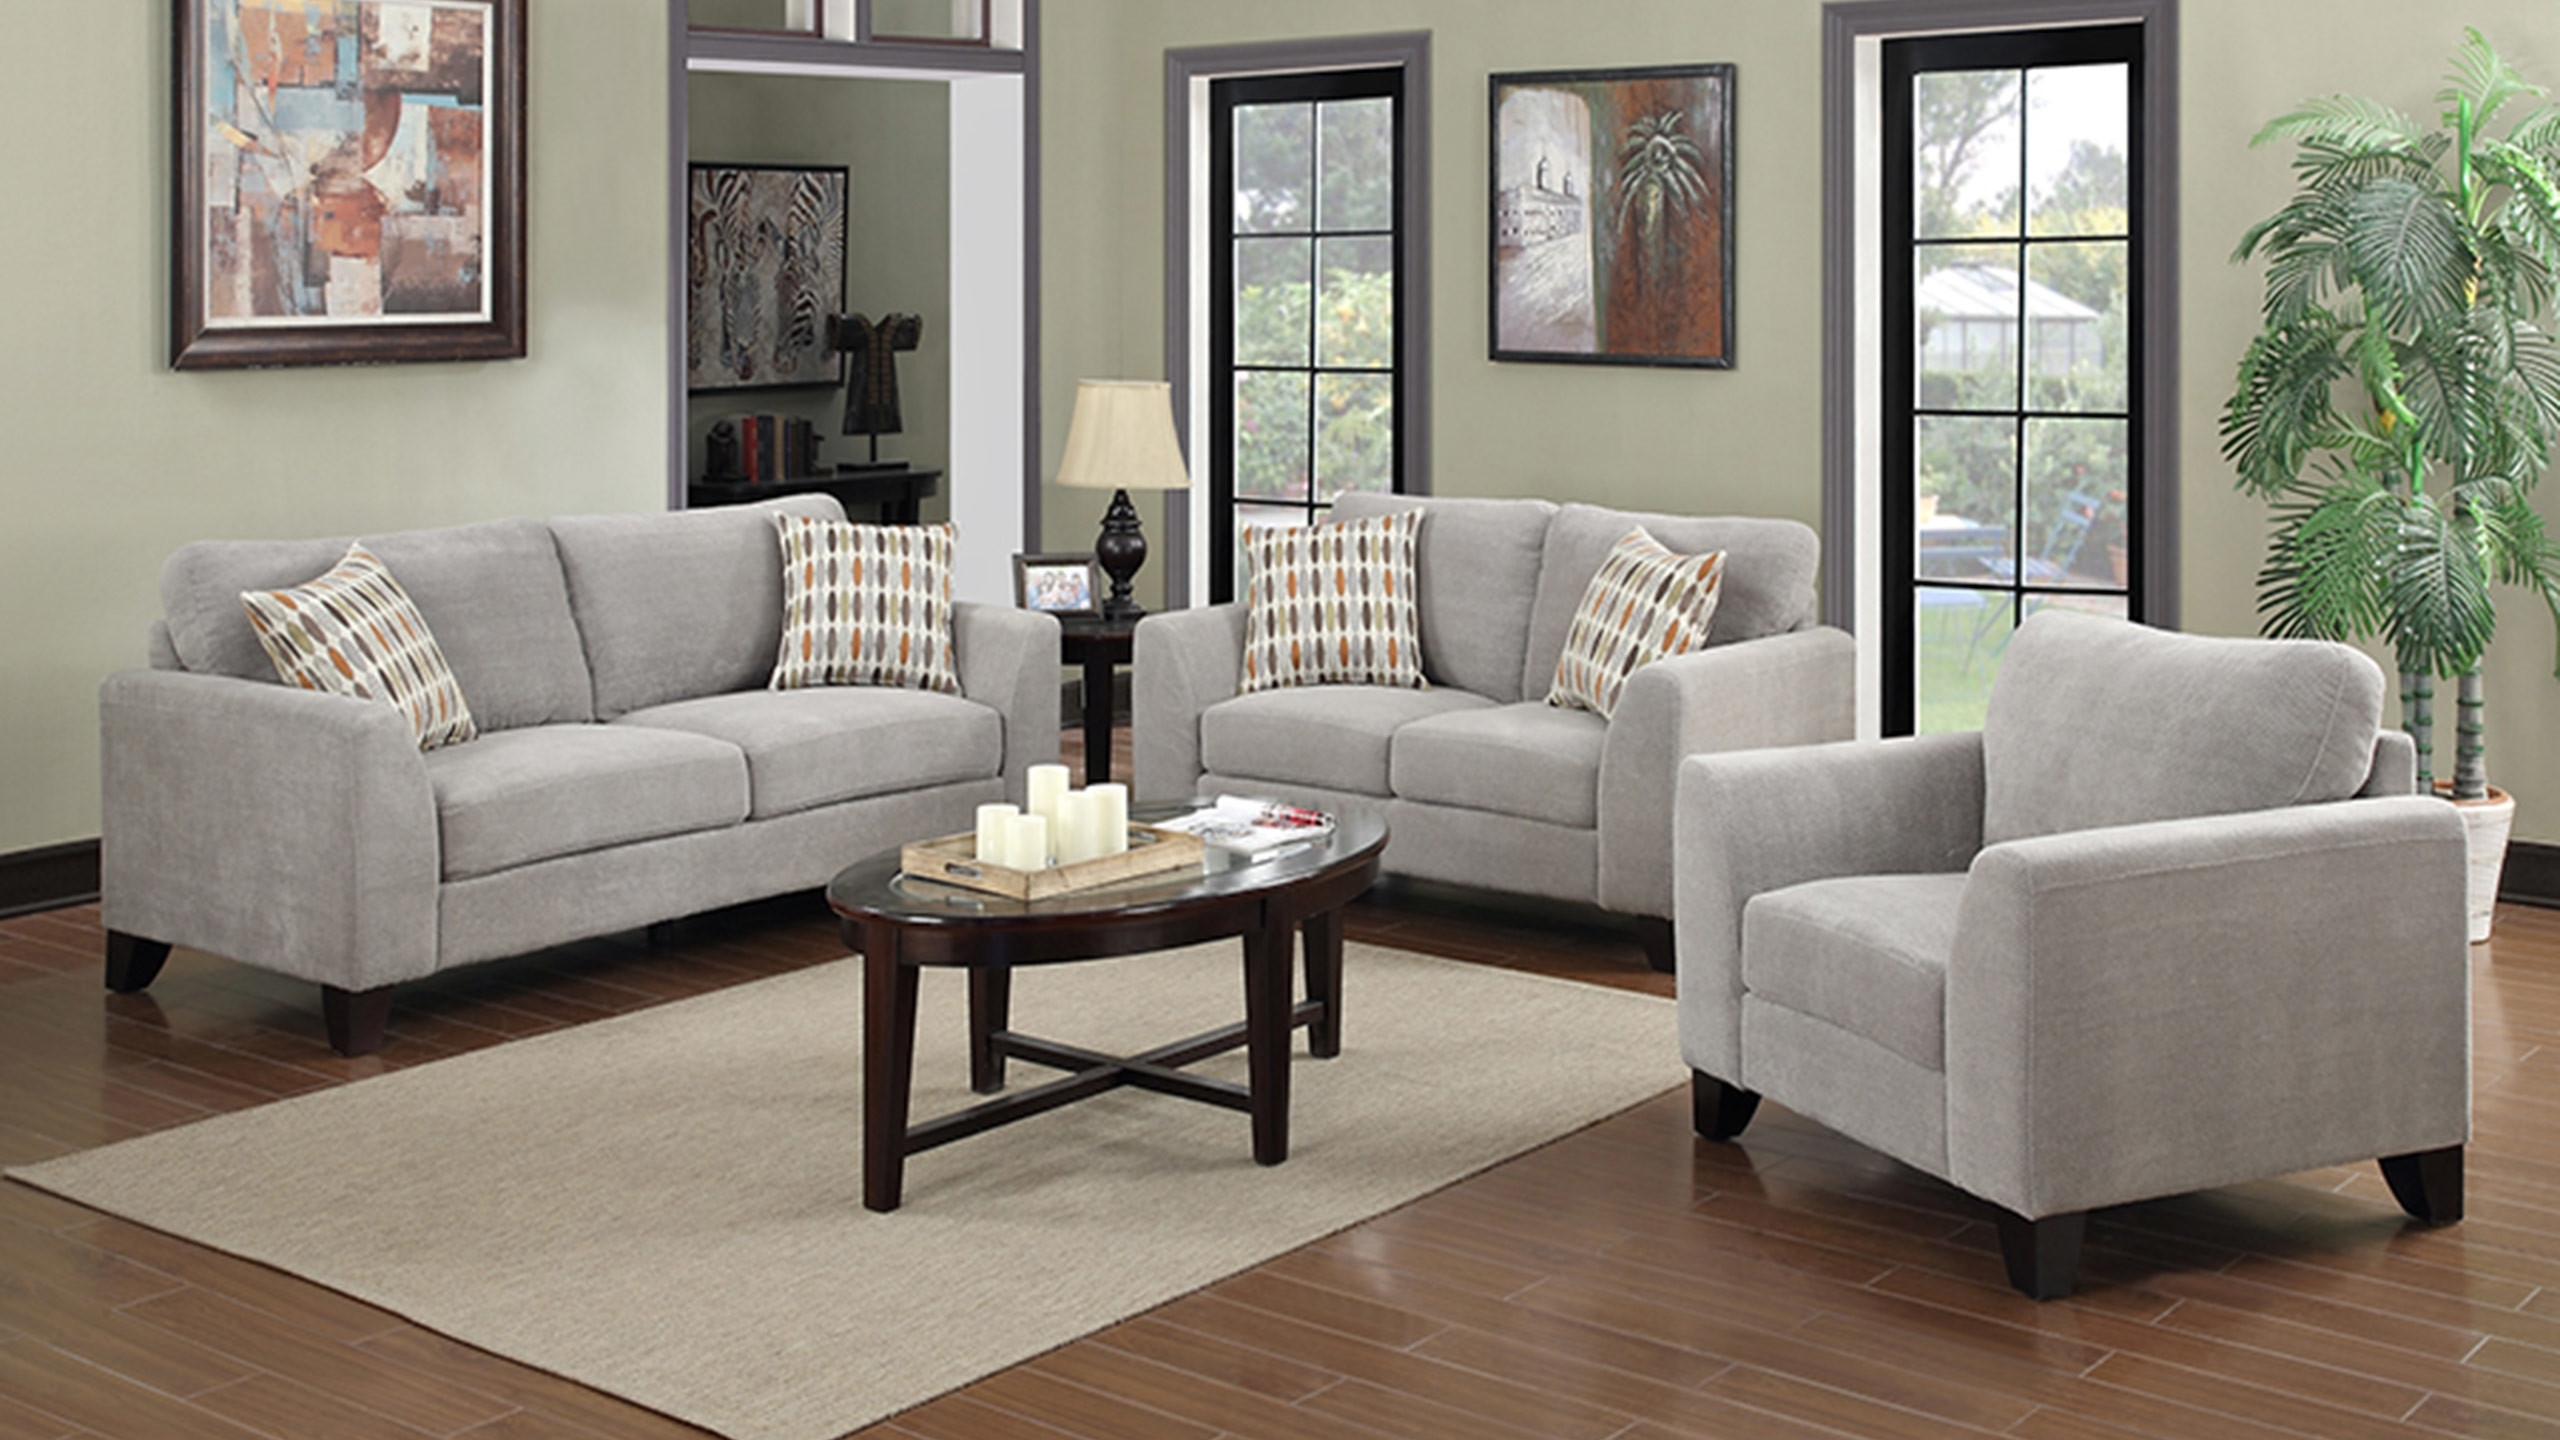 Rent Accent Chairs Aarons Kimberly Sectional Sofa Rental For With Widely Used Sectional Sofas At Aarons (View 12 of 20)